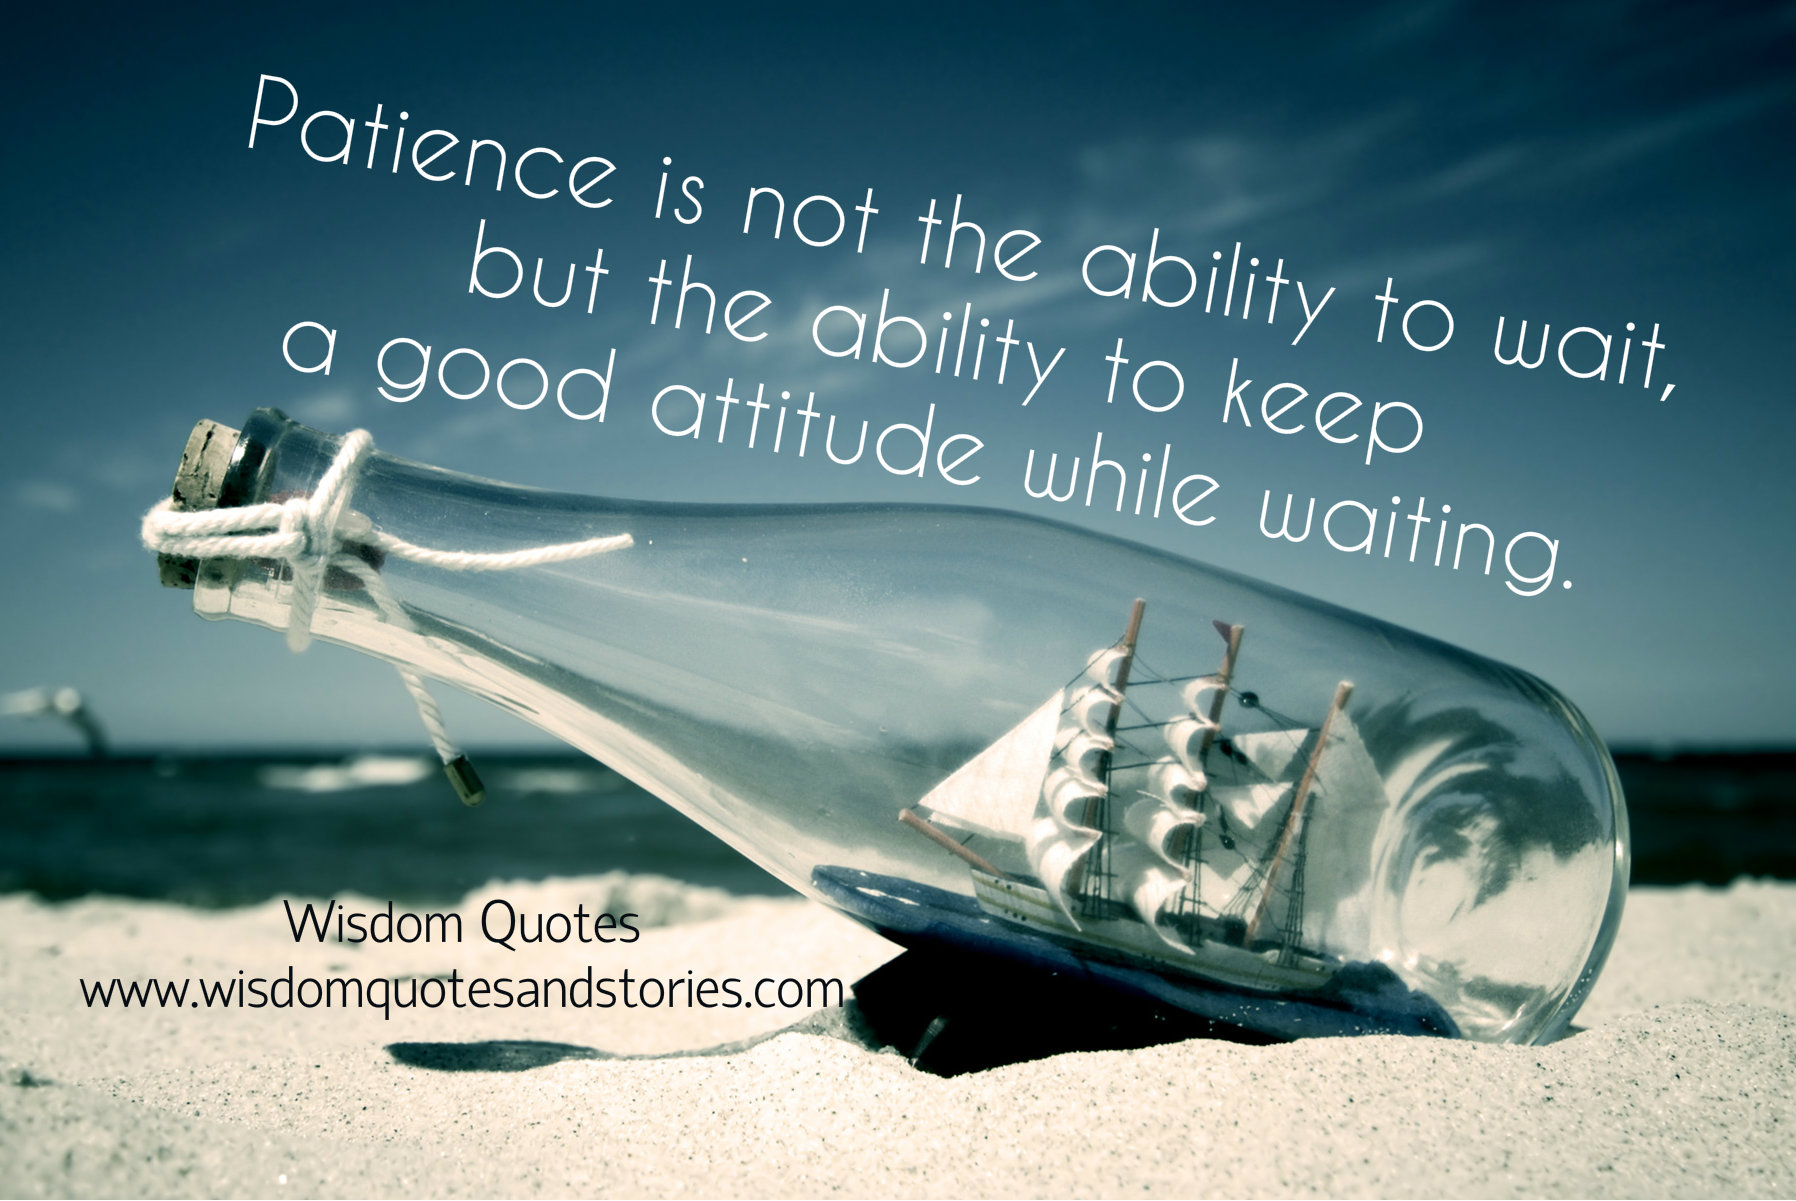 Patience is not the ability to wait but the ability to keep a good attitude going while waiting